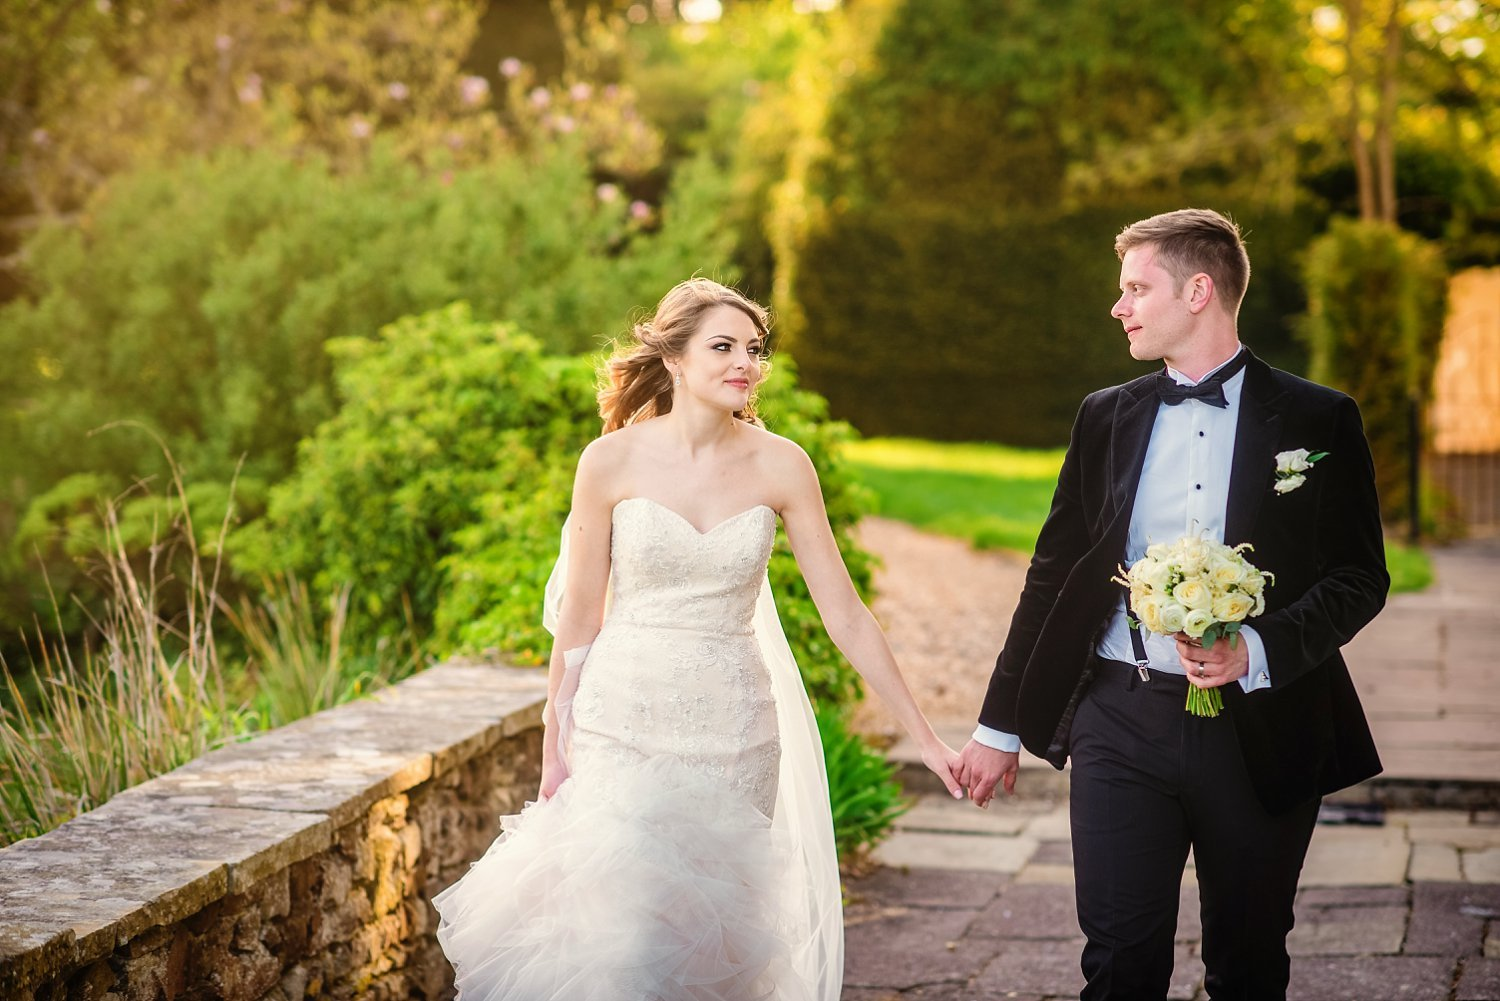 Northbrook Park Wedding - bride and groom are walking, holding hands and looking at each other